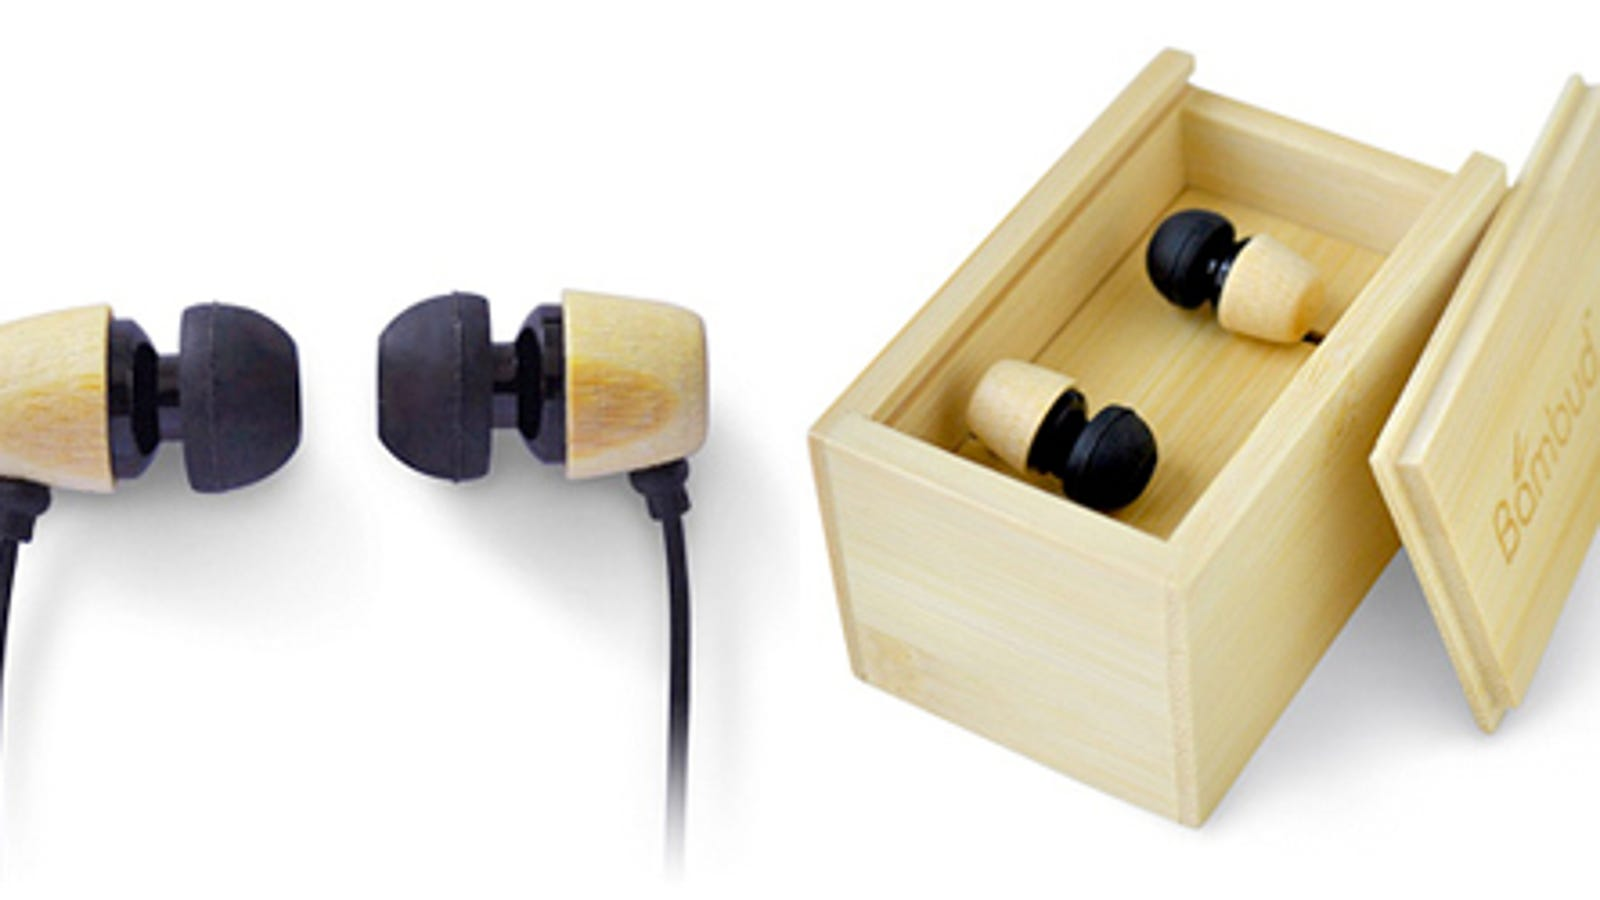 mono earbud single ear wireless